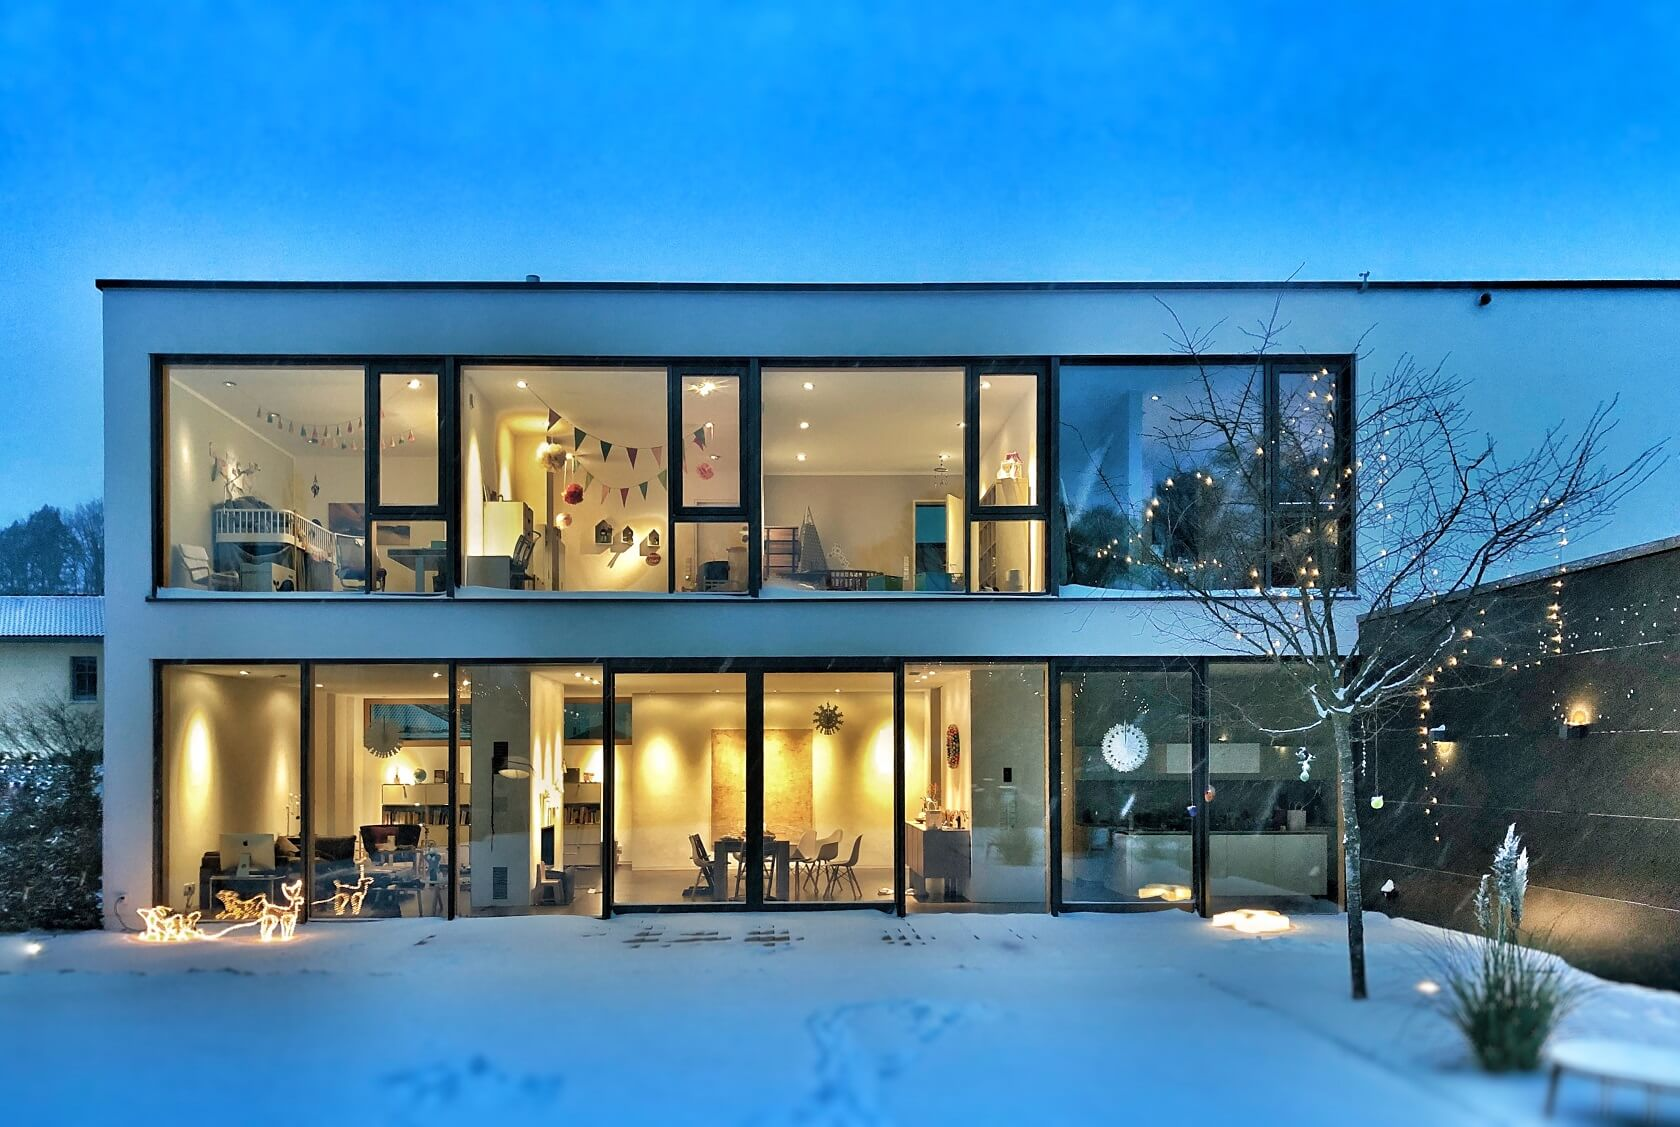 A house with many windows and glass at dusk with snow on the lawn